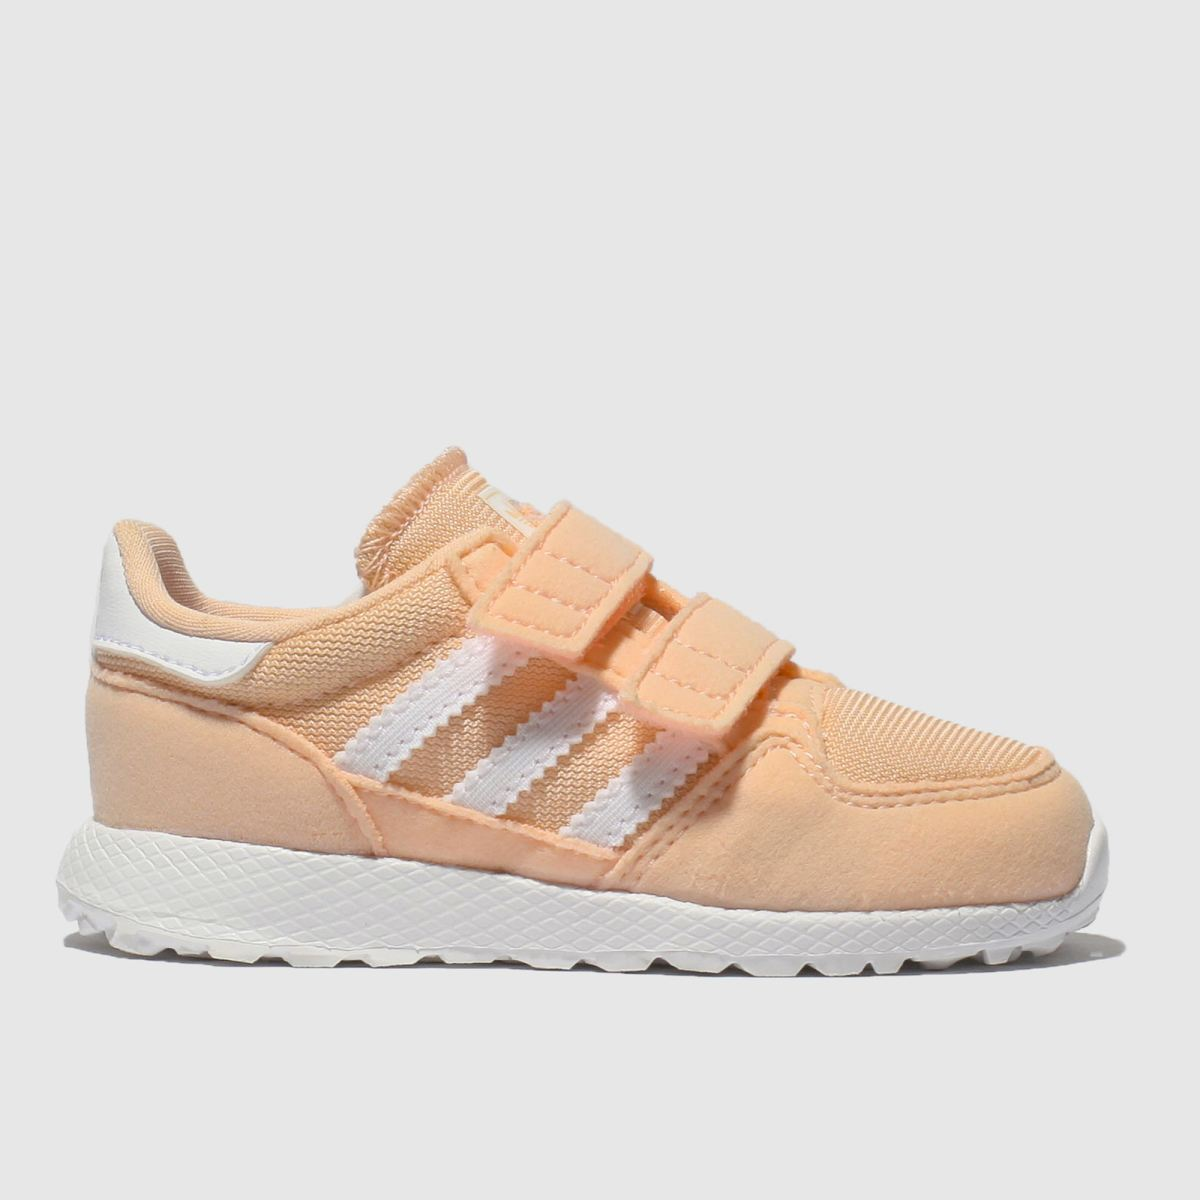 Adidas Peach Forest Grove Trainers Toddler